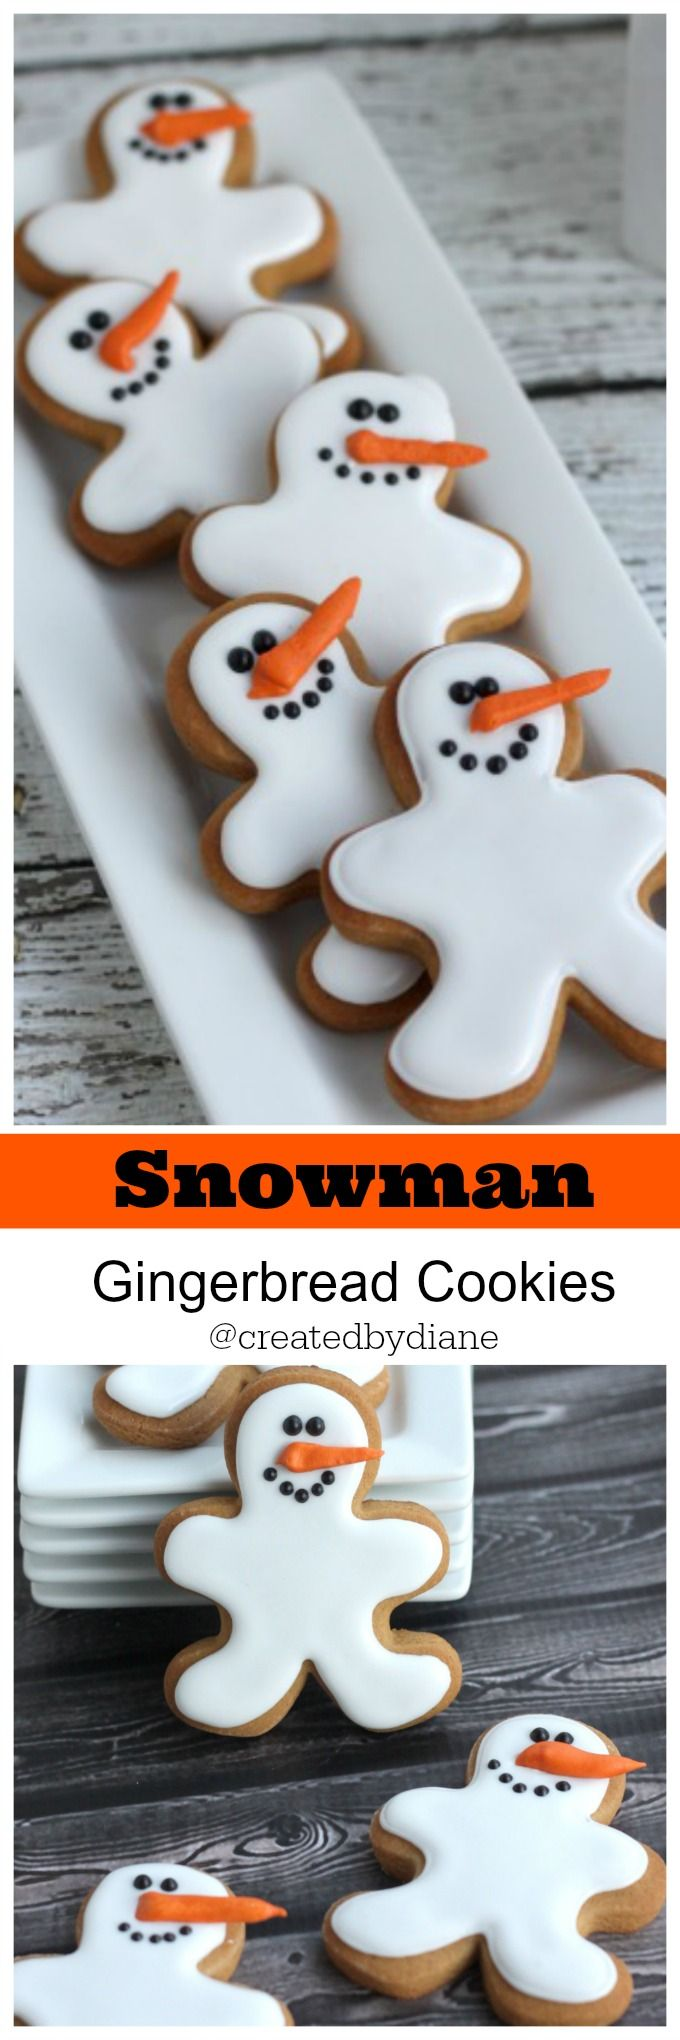 Snowman Gingerbread Cookies @createdbydiane                                                                                                                                                                                 More